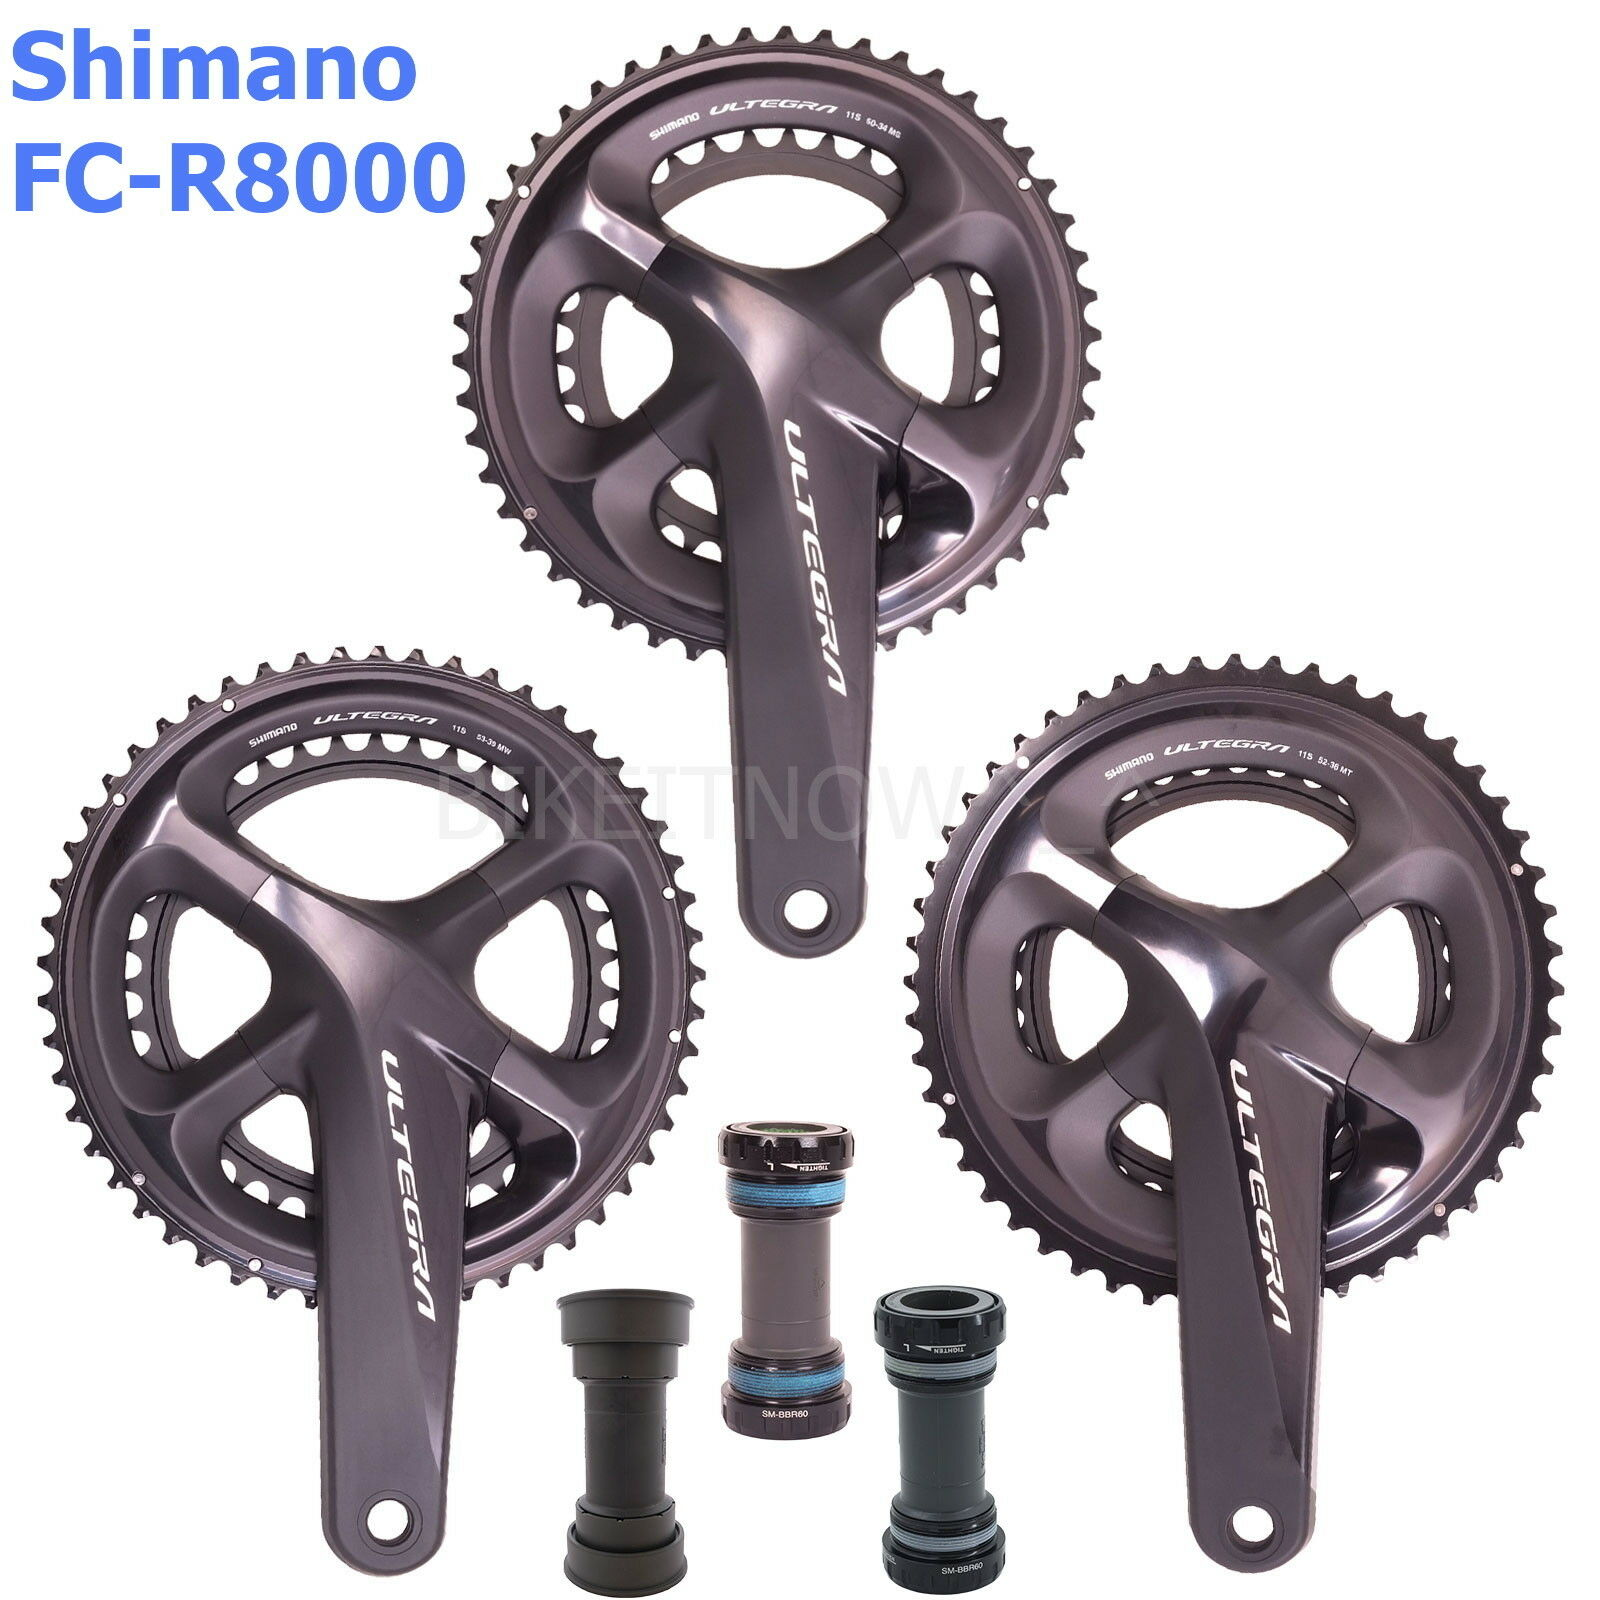 Shimano  Ultegra FC-R8000 Road Bike Crankset 11S 165 170 172.5 175mm,50 52 53T  come to choose your own sports style